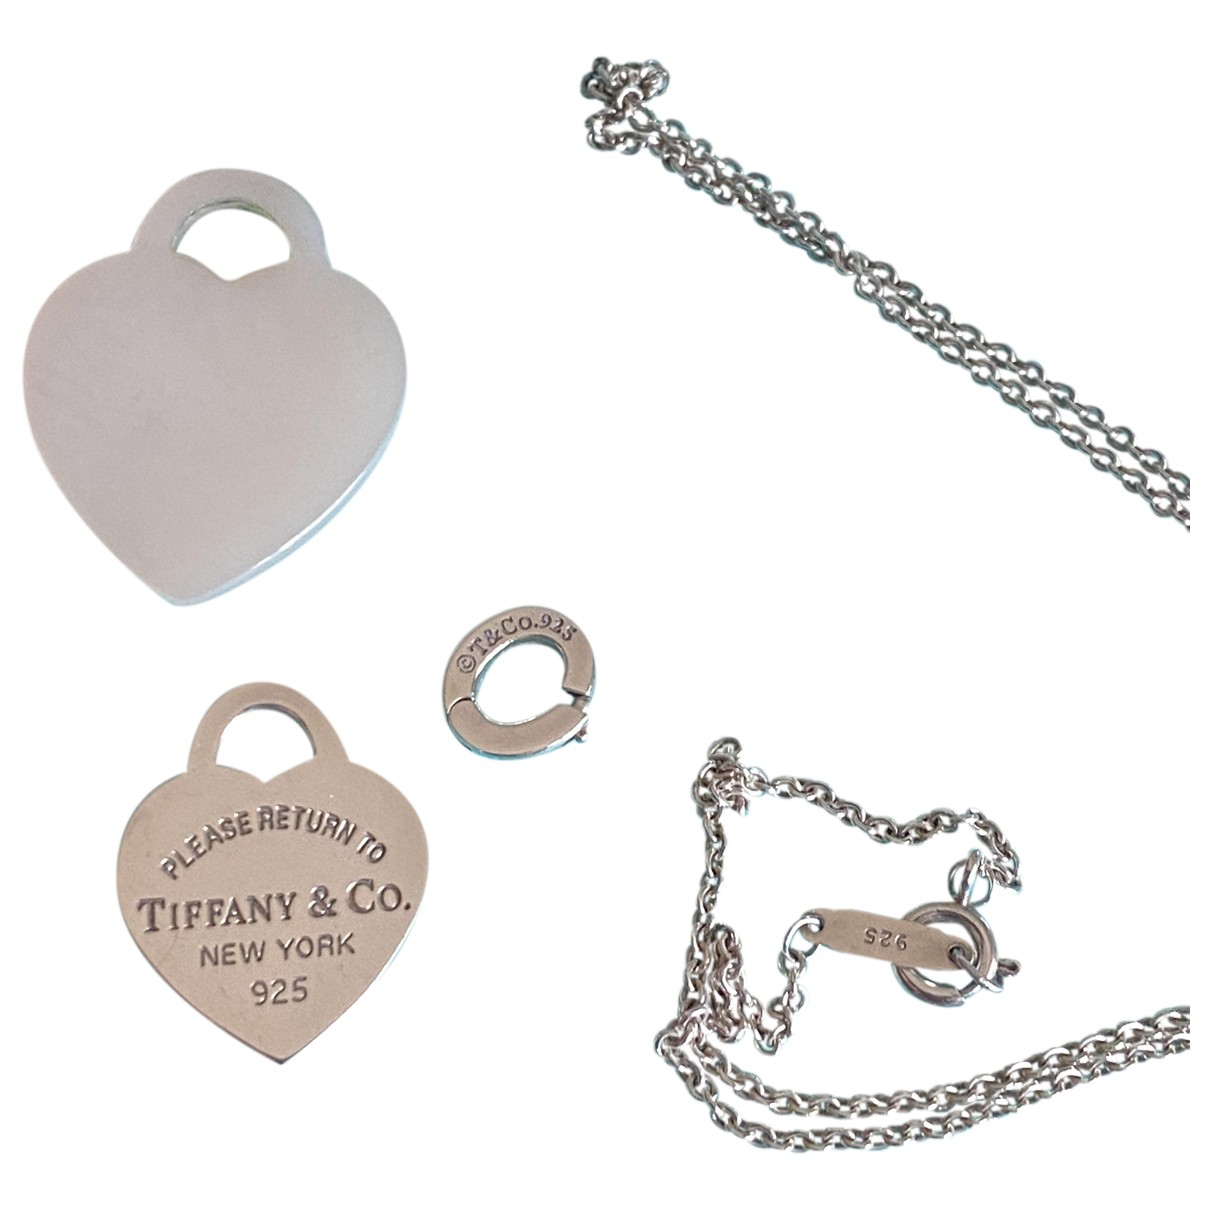 Tiffany & Co Return to Tiffany Kette in  Silber Silber